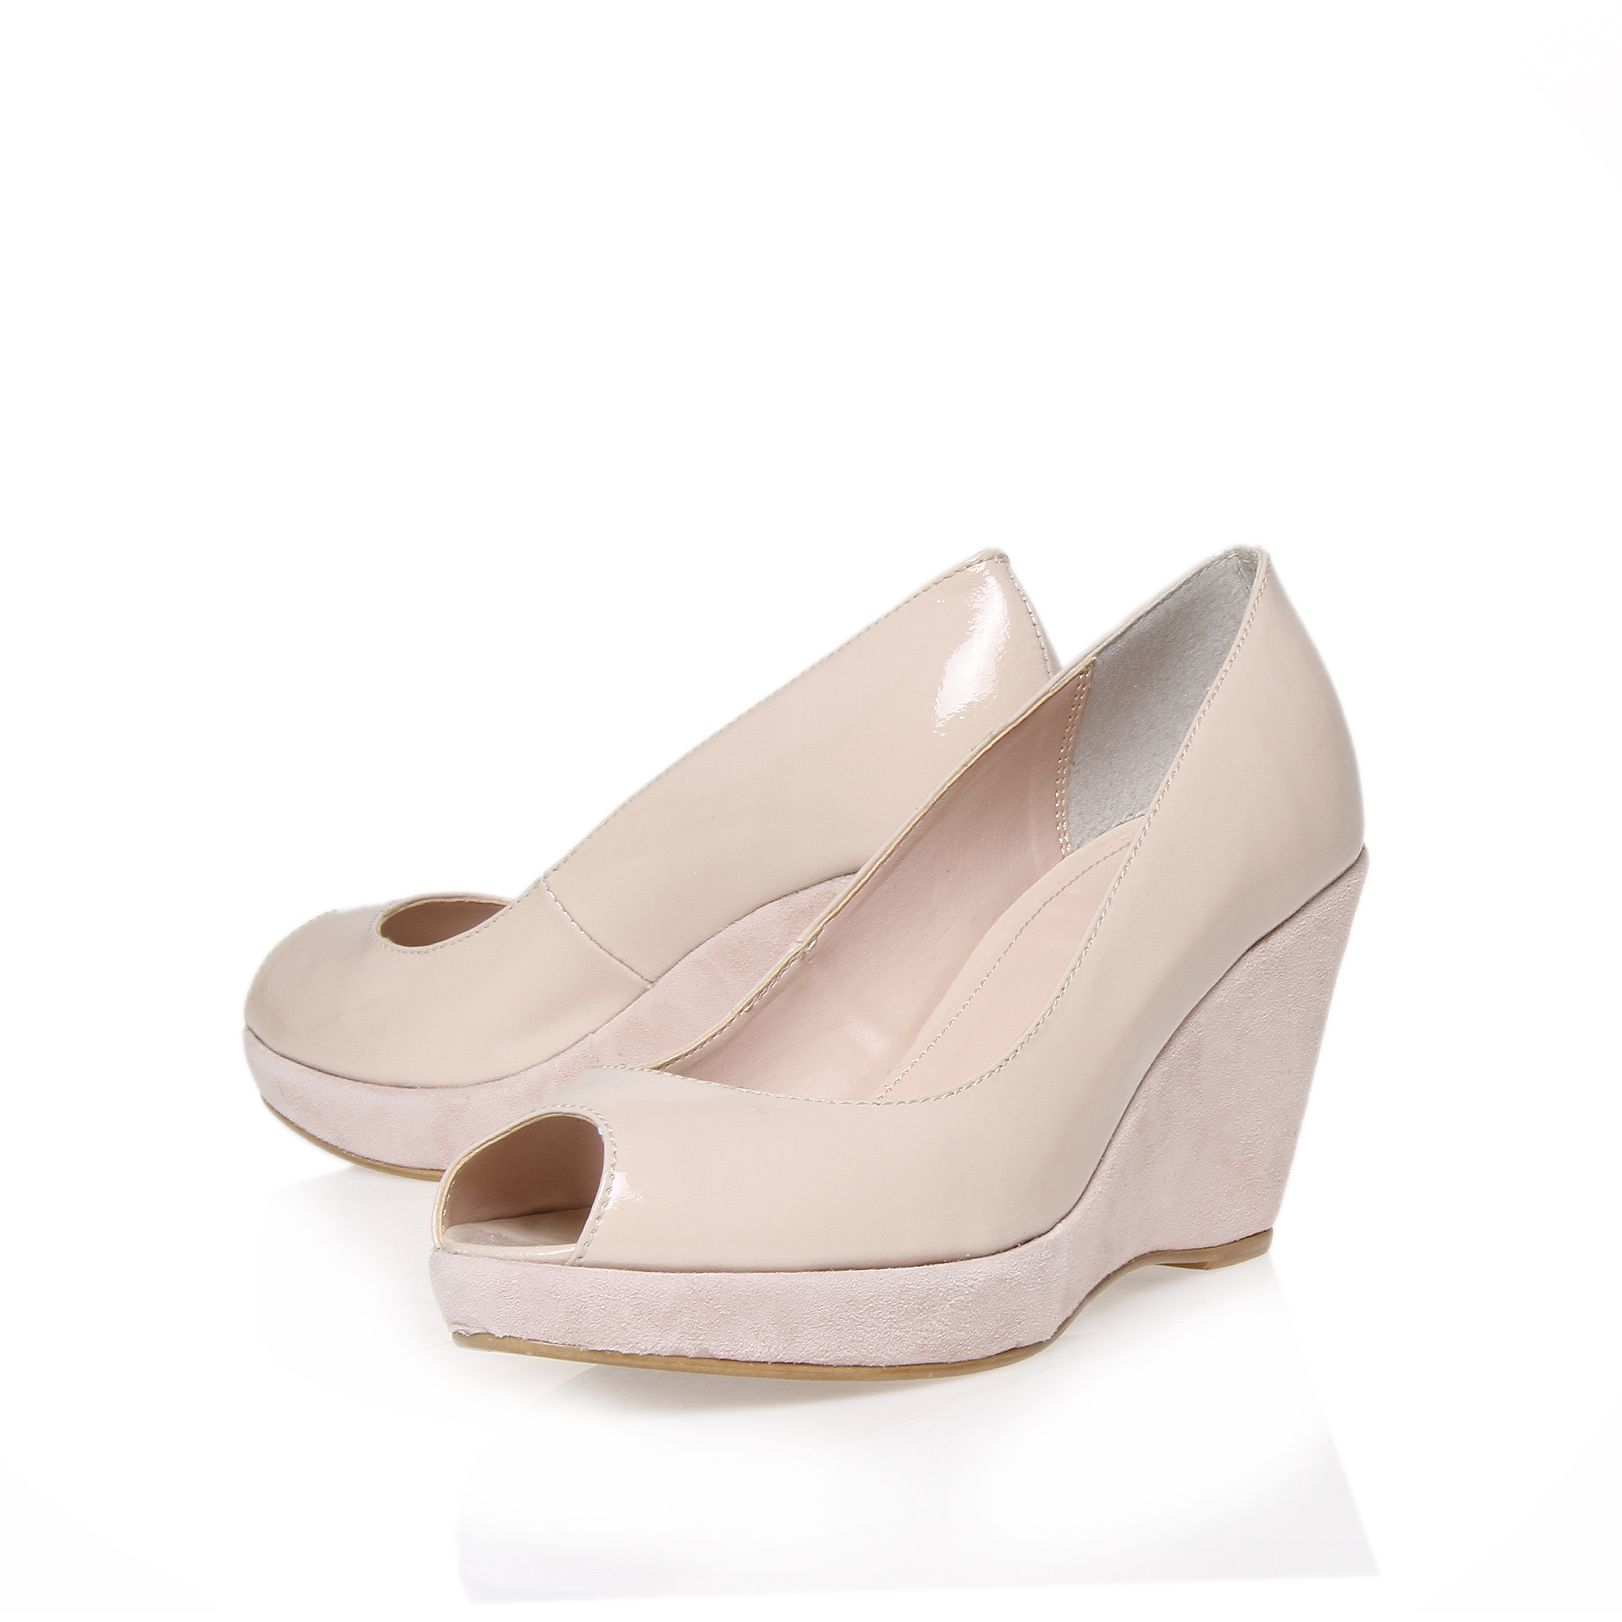 Apricot peep toe wedge shoes